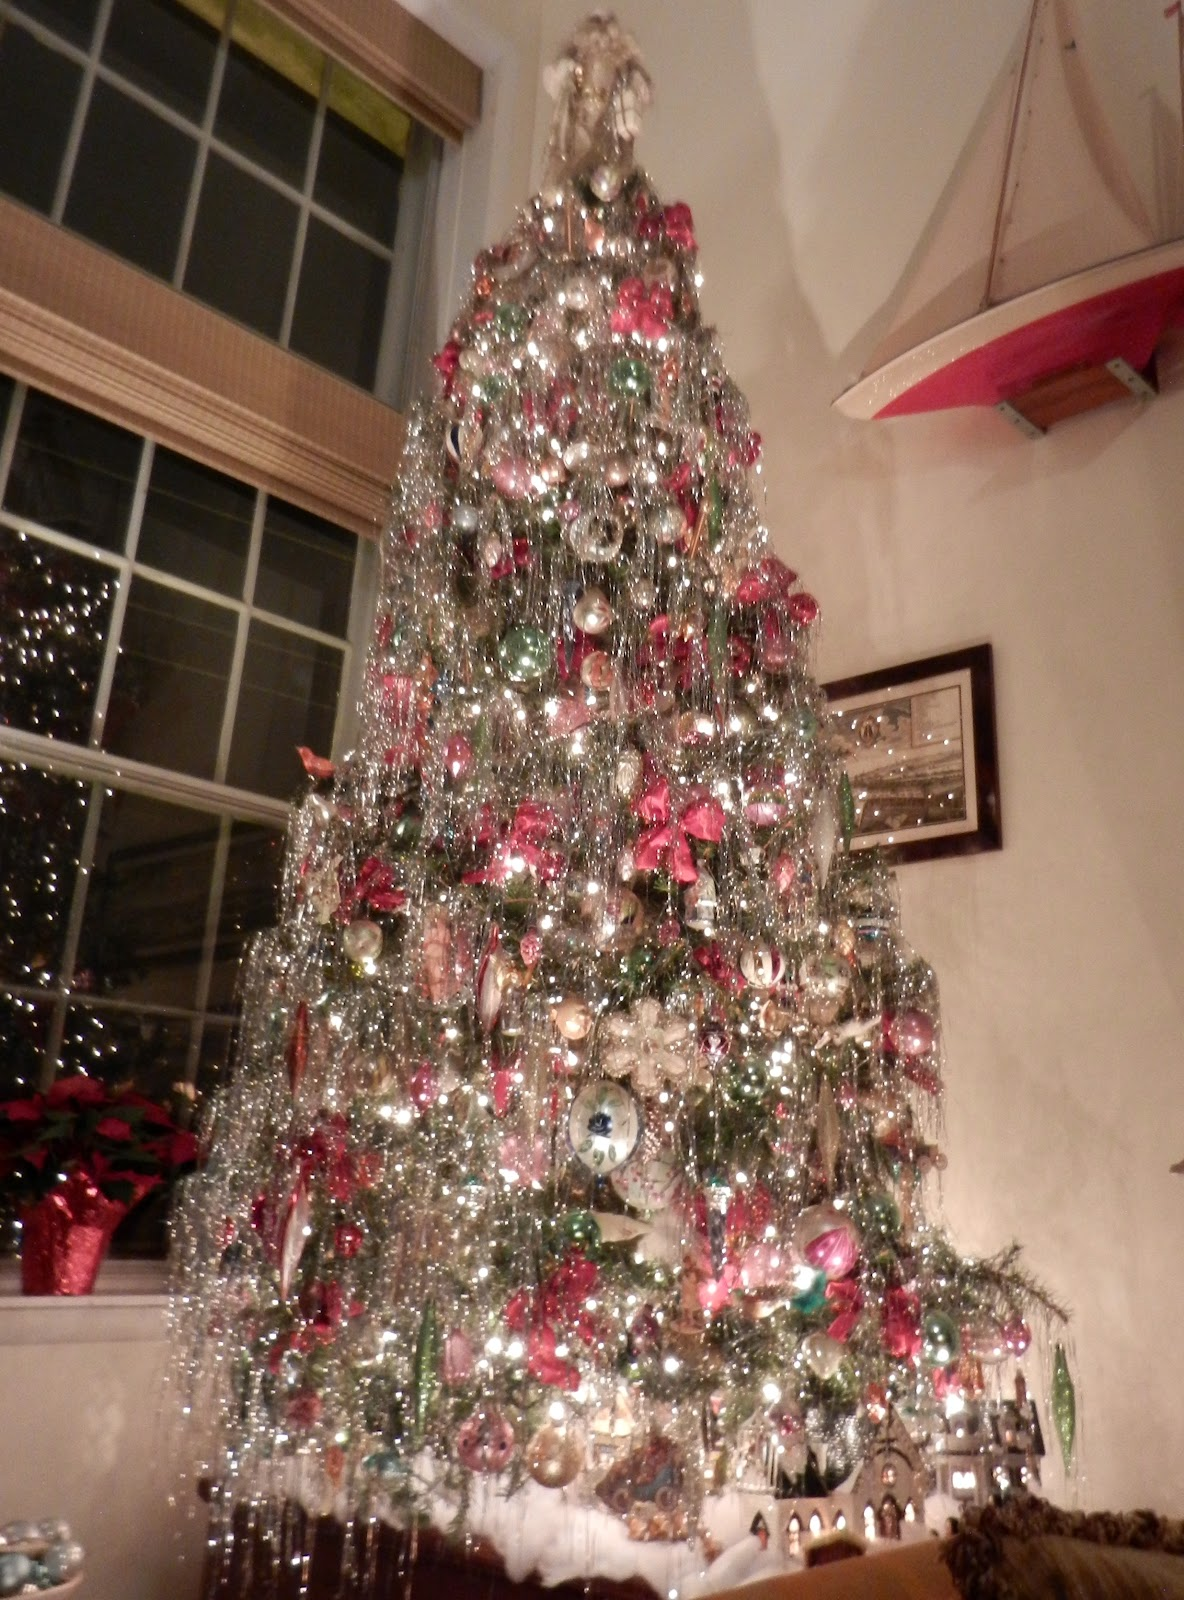 Knickerbocker Style & Design: An Old-Fashioned Christmas Tree